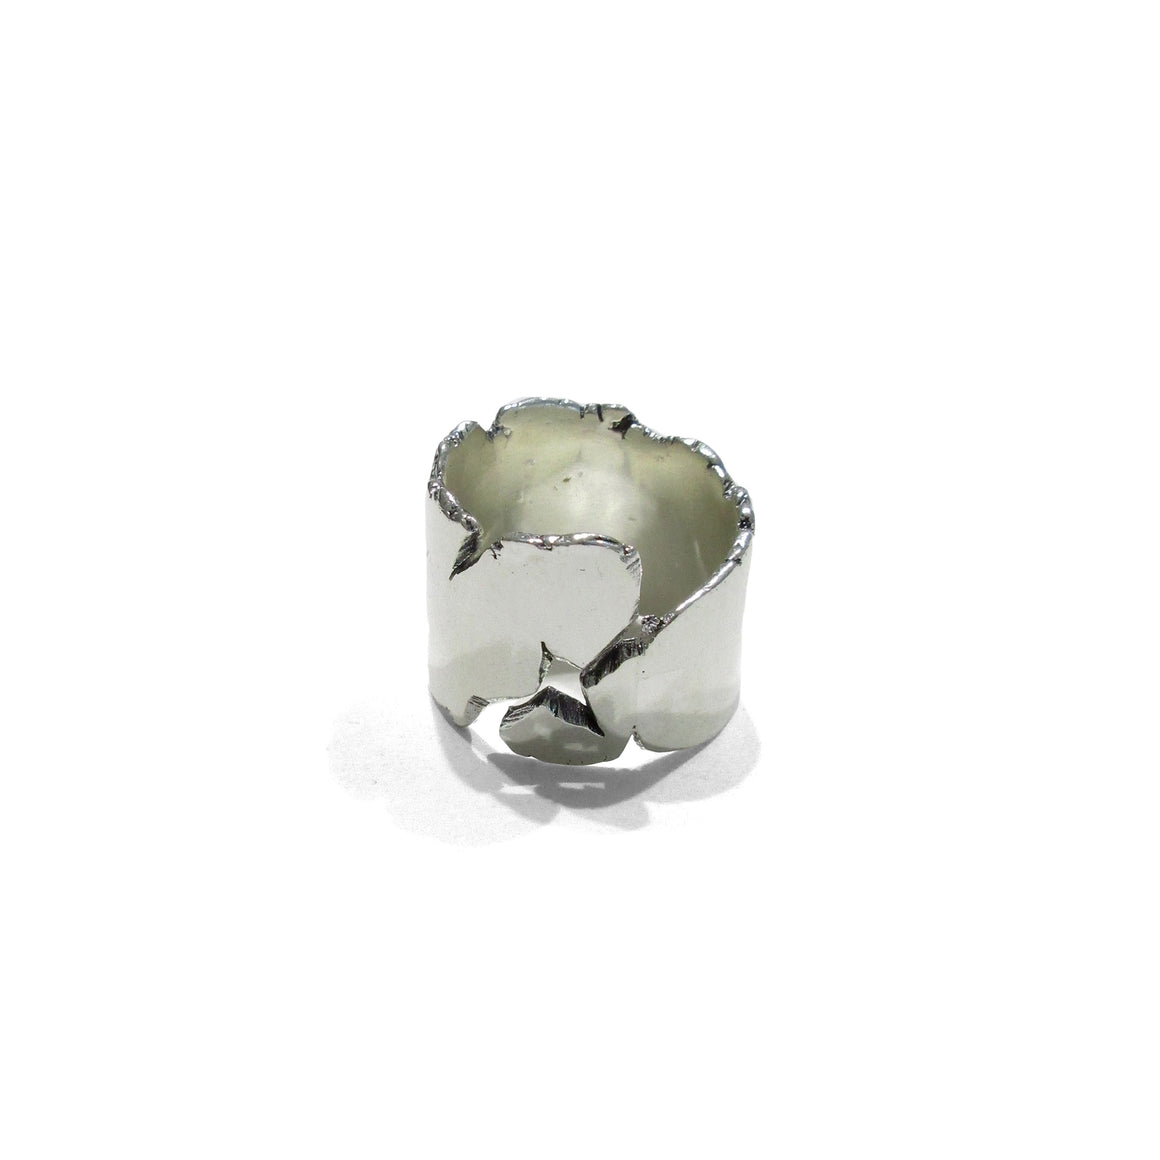 handmade sterling silver unisex ring by Seth Papac